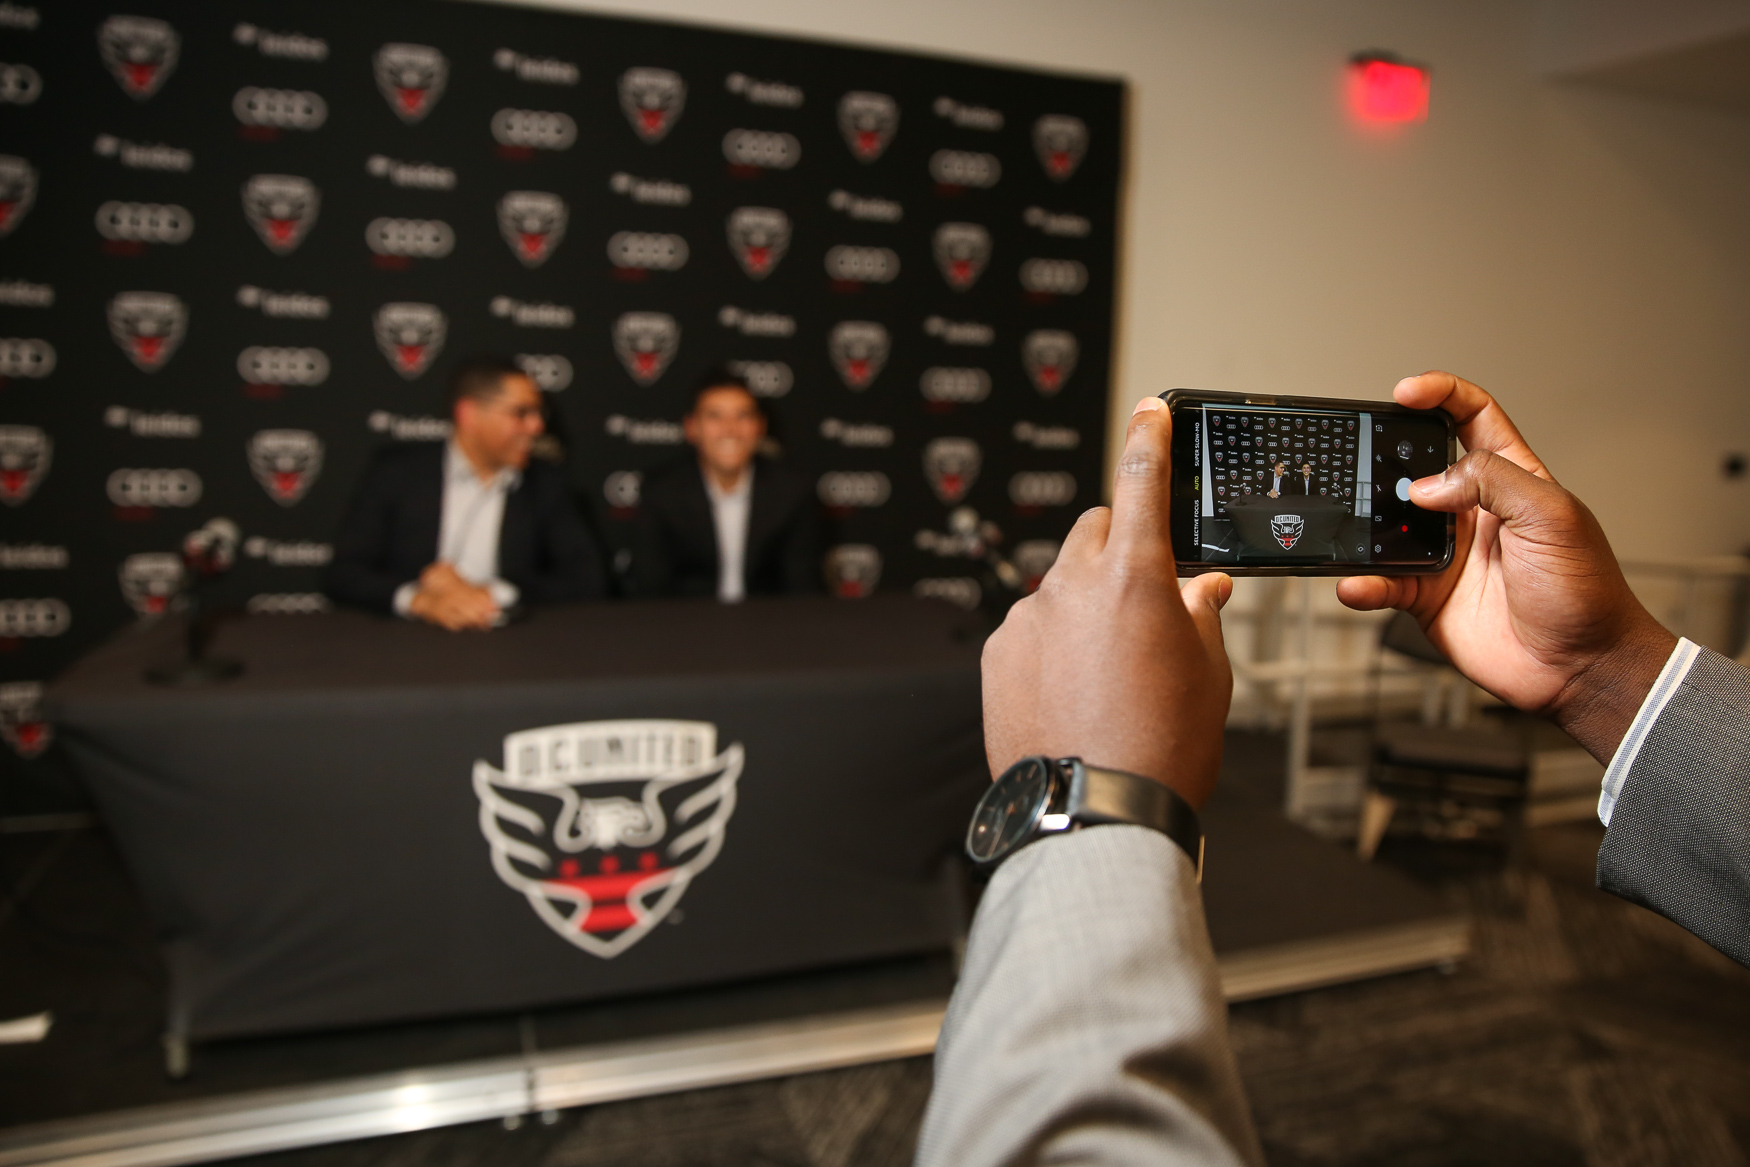 DC United players and fans came to Audi Field on October 4 for One Night One Goal, a charity event which benefitted DC Scores. Guests had the chance to check out the player's locker room, enjoy meals from Jose Andres' ThinkFoodGroup, bid on experiences with DC United players and mingle with their favorite players, like David Ousted and Steven{ }Birnbaum. DC Scores brings team sports to underserved D.C. youth, in the hopes that it'll teach them teamwork and leadership skills. (Amanda Andrade-Rhoades/DC Refined)